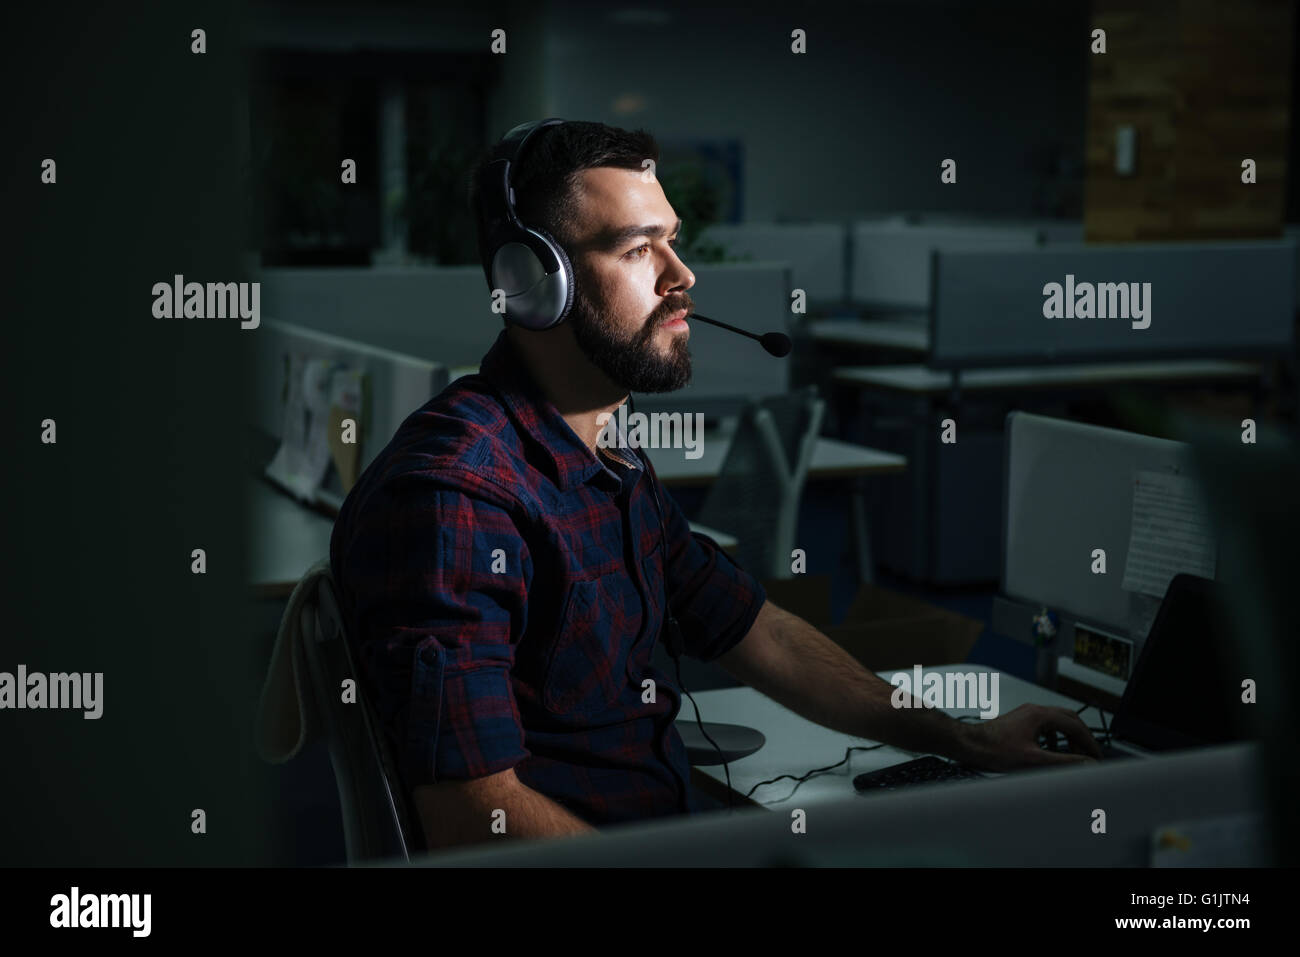 Concentrated handsome young man in headphones sitting and working at night in dark office - Stock Image